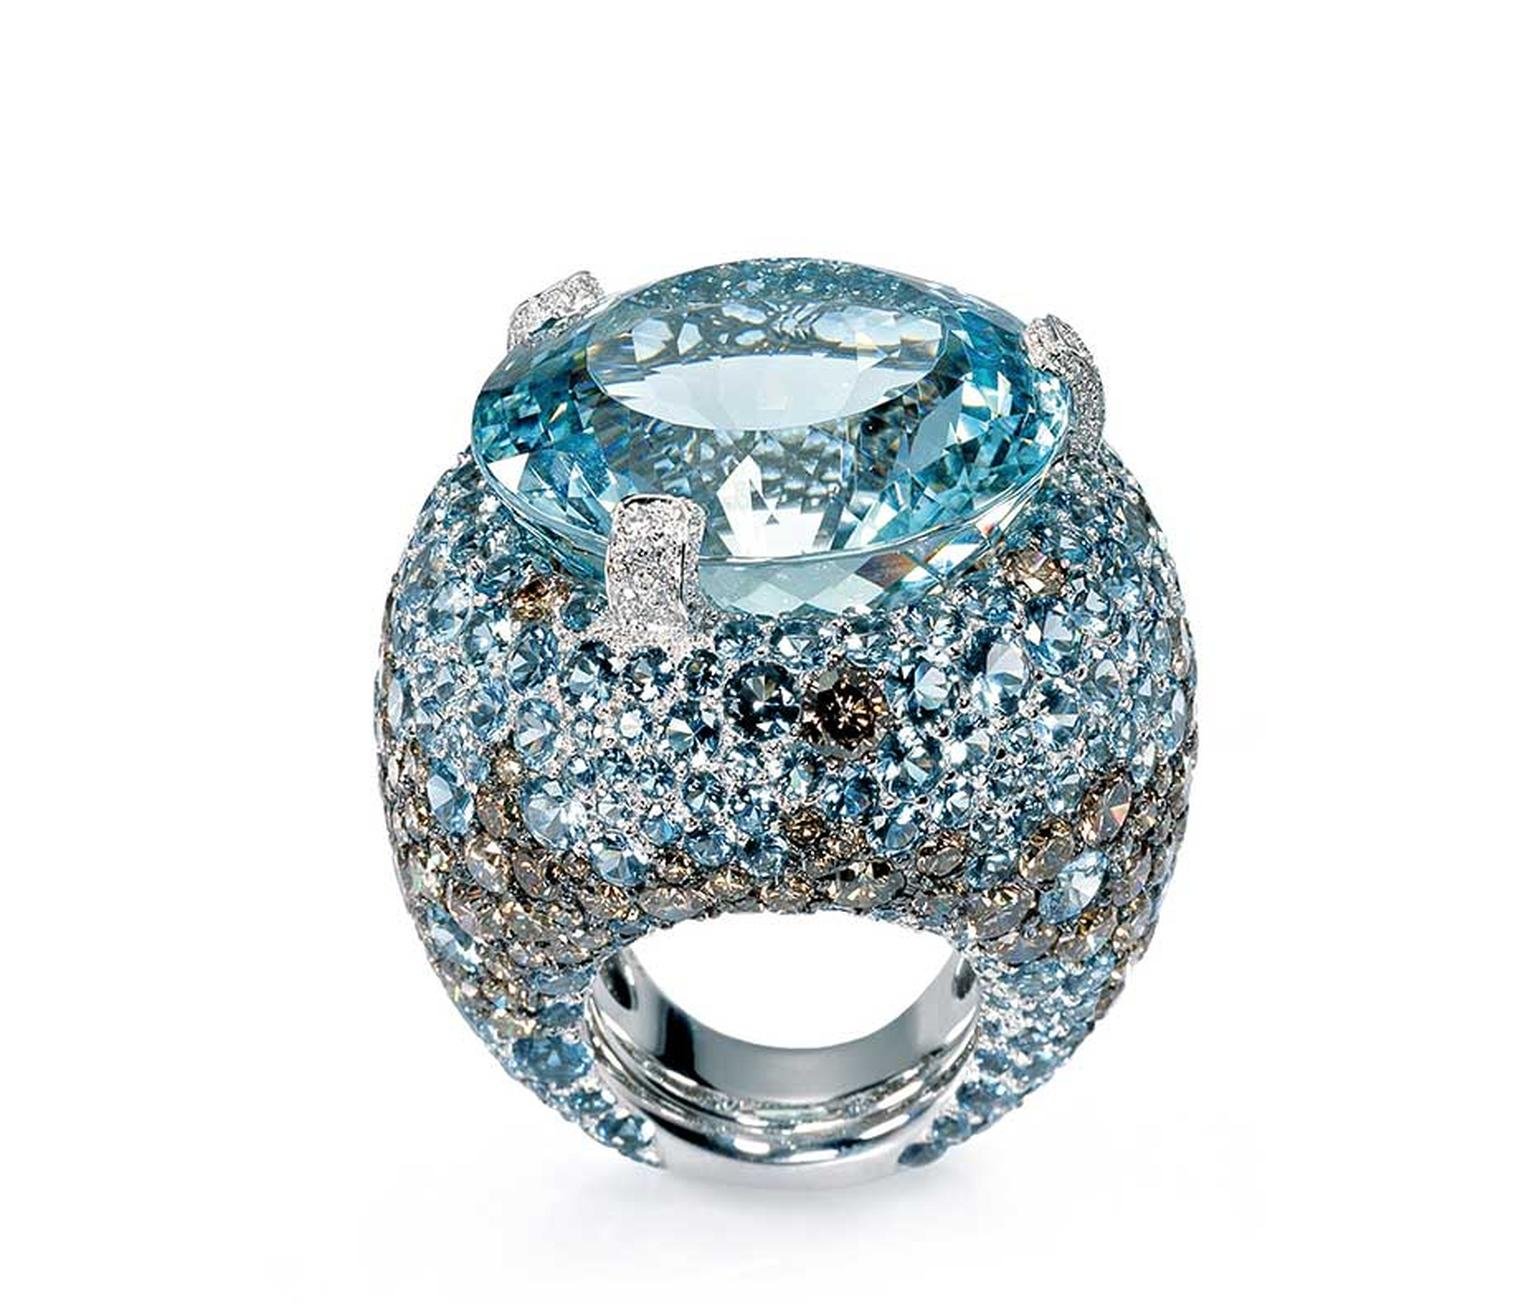 de GRISOGONO aquamarine ring with diamonds, from the Melody of Colours collection.